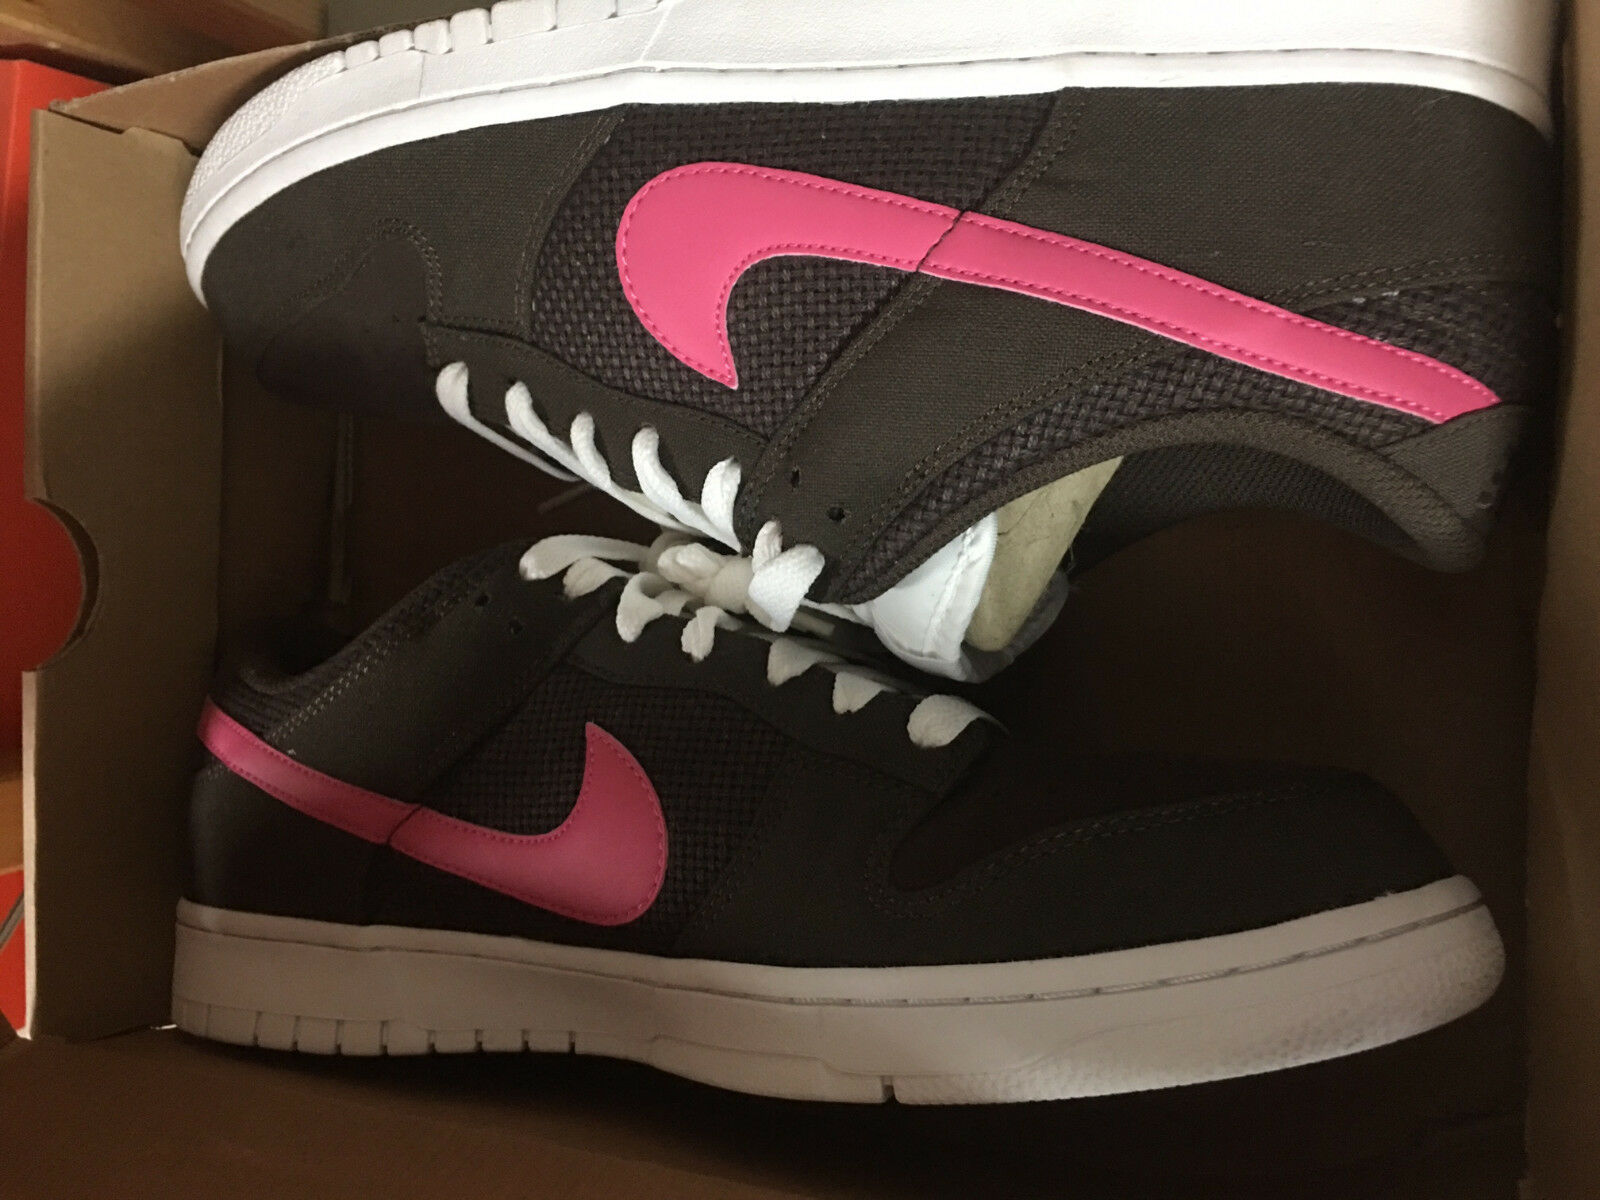 NIKE Dunk Lo LOW CL Neu Gr 42 US 8,5 Braun Rosa Force Air Turnschuhe 318020-261 Berühmter Laden